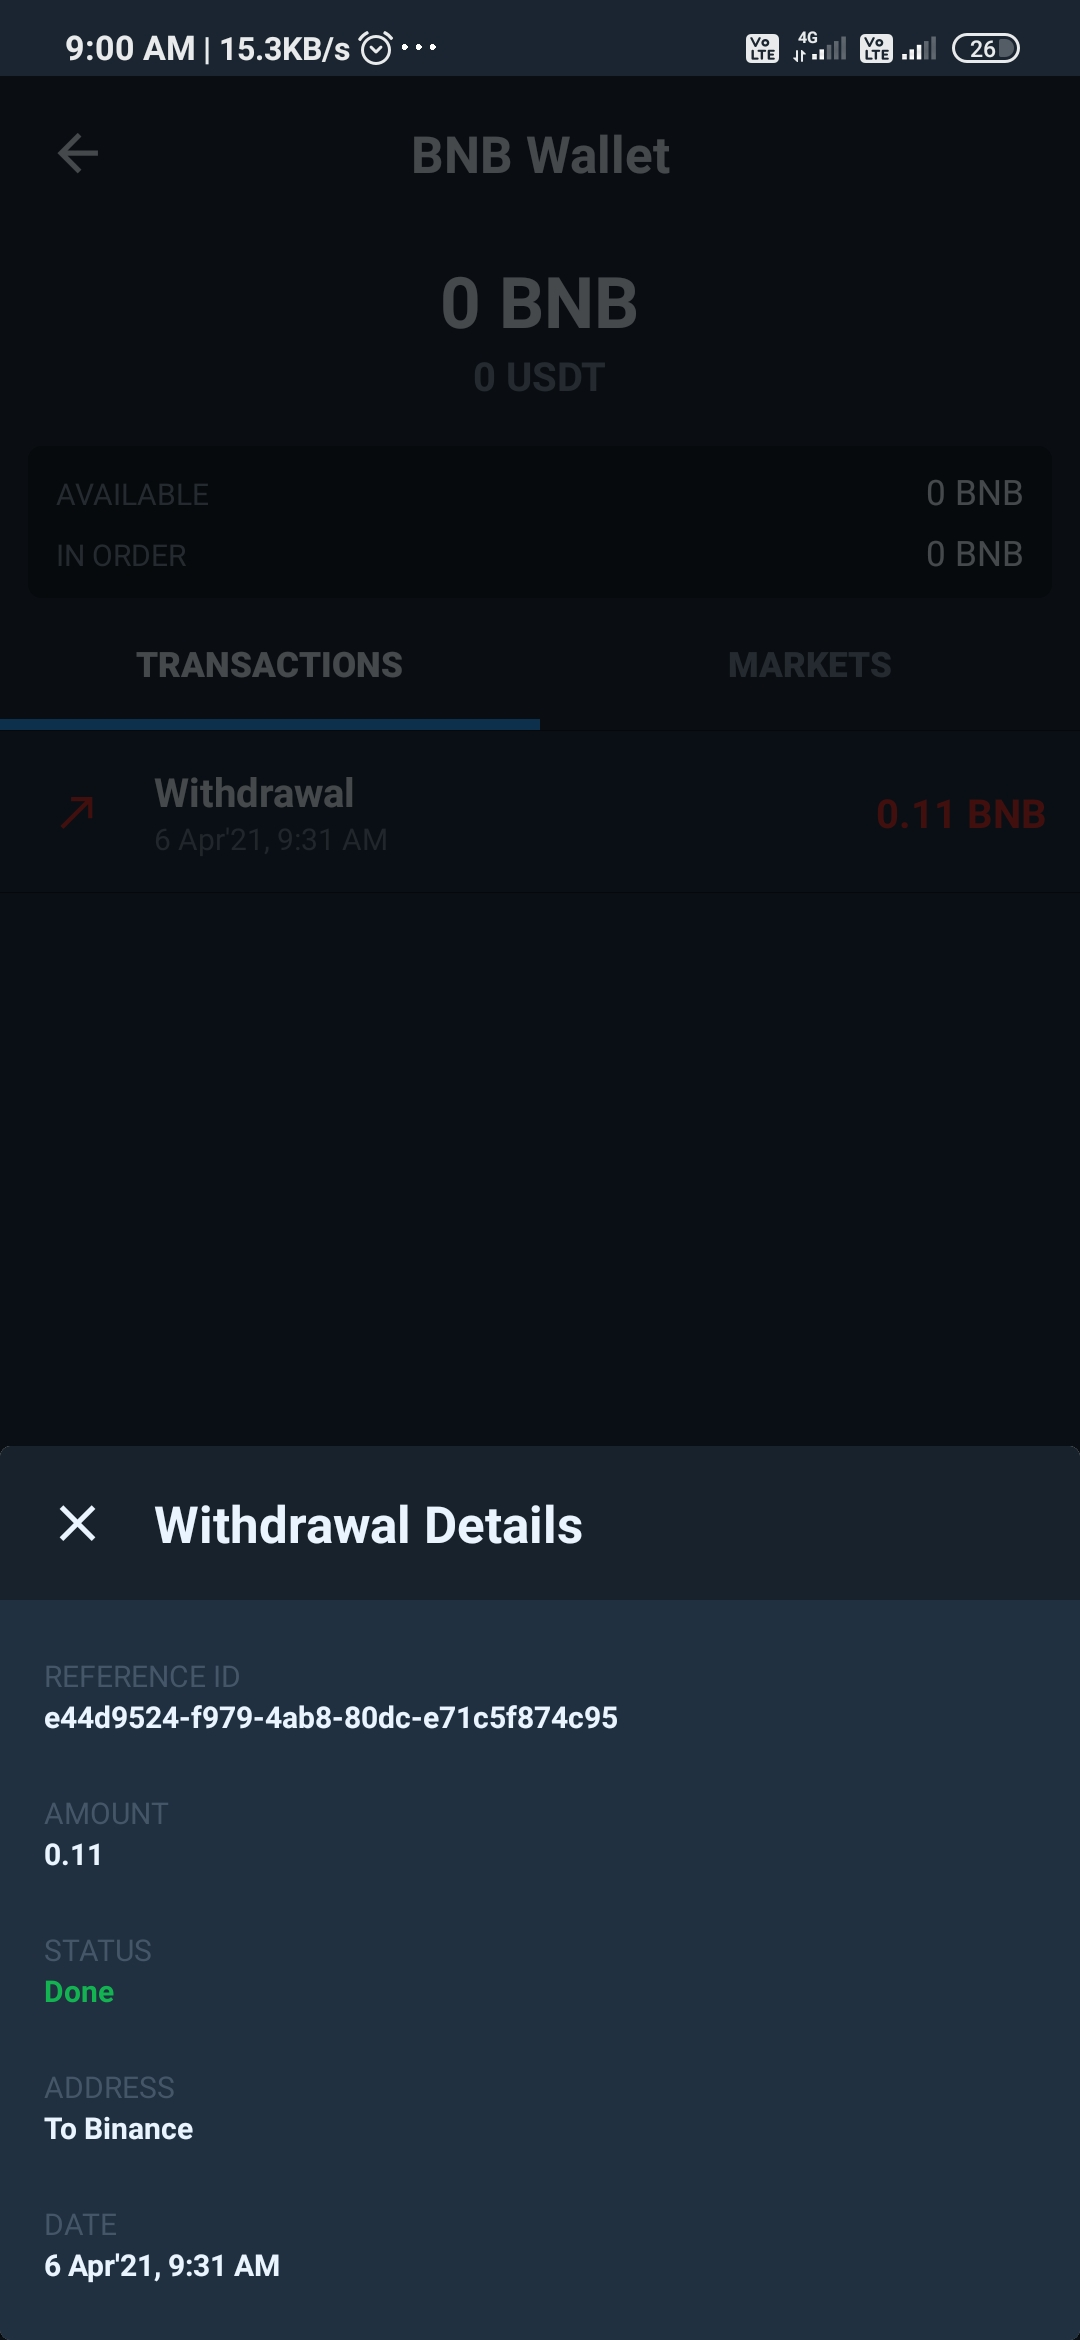 Bnb transferred by not received